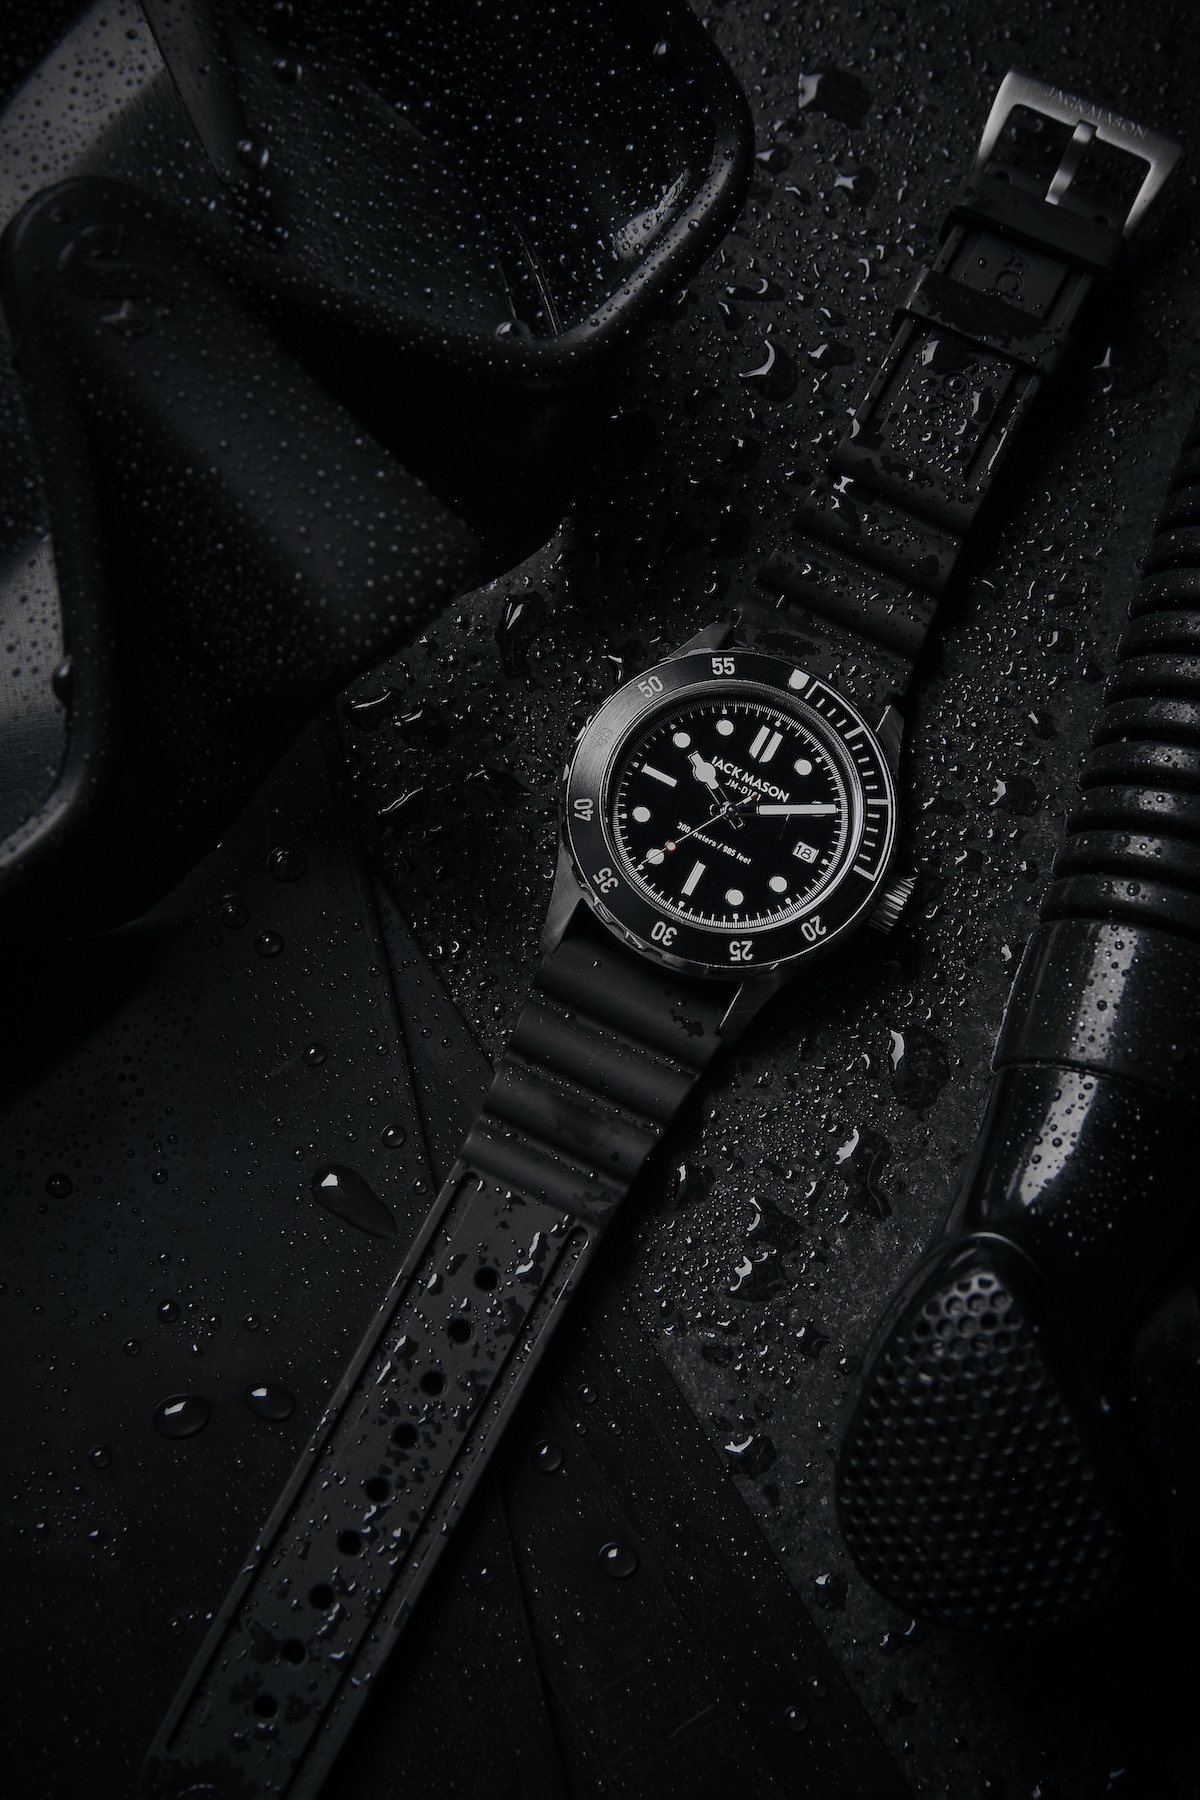 KRC - Diving Watch.jpg